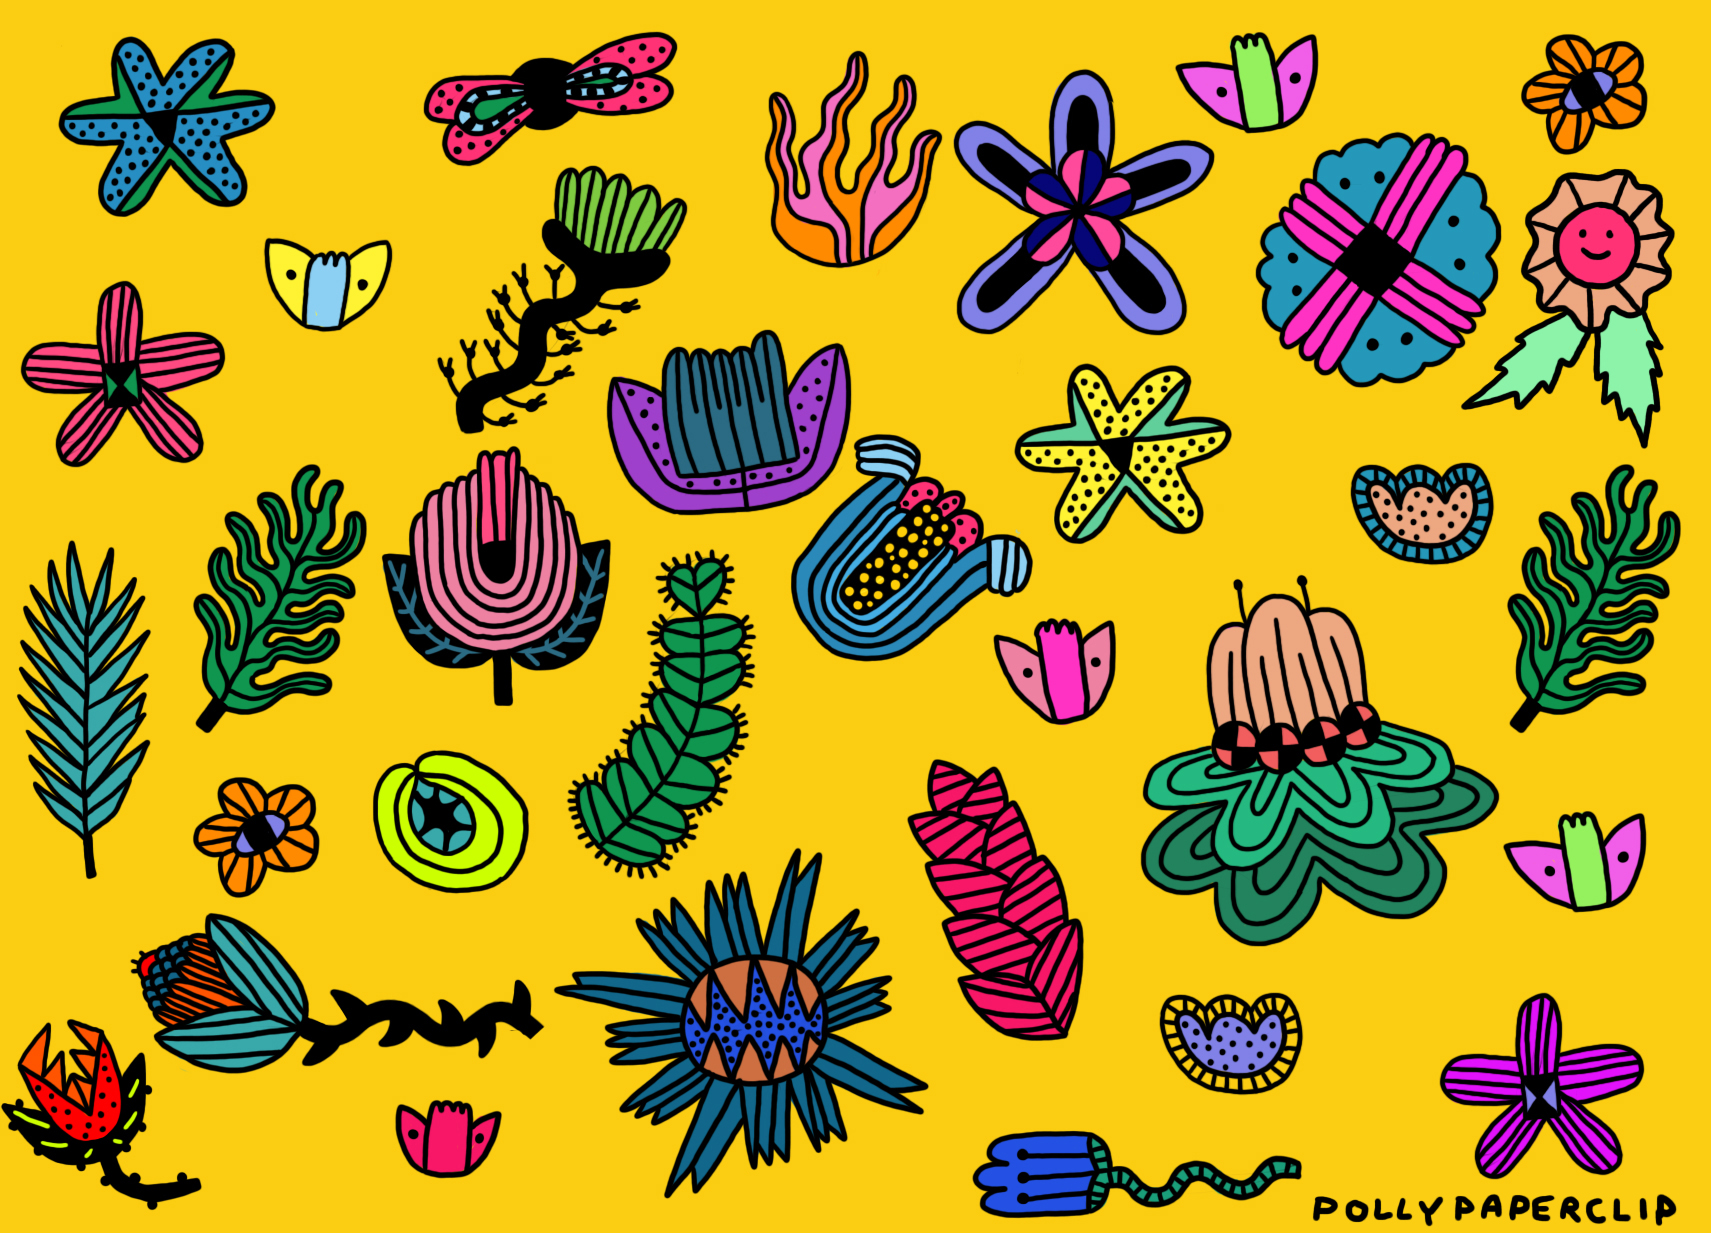 Alien Space Plants A4 poster sold by Polly Paperclip.